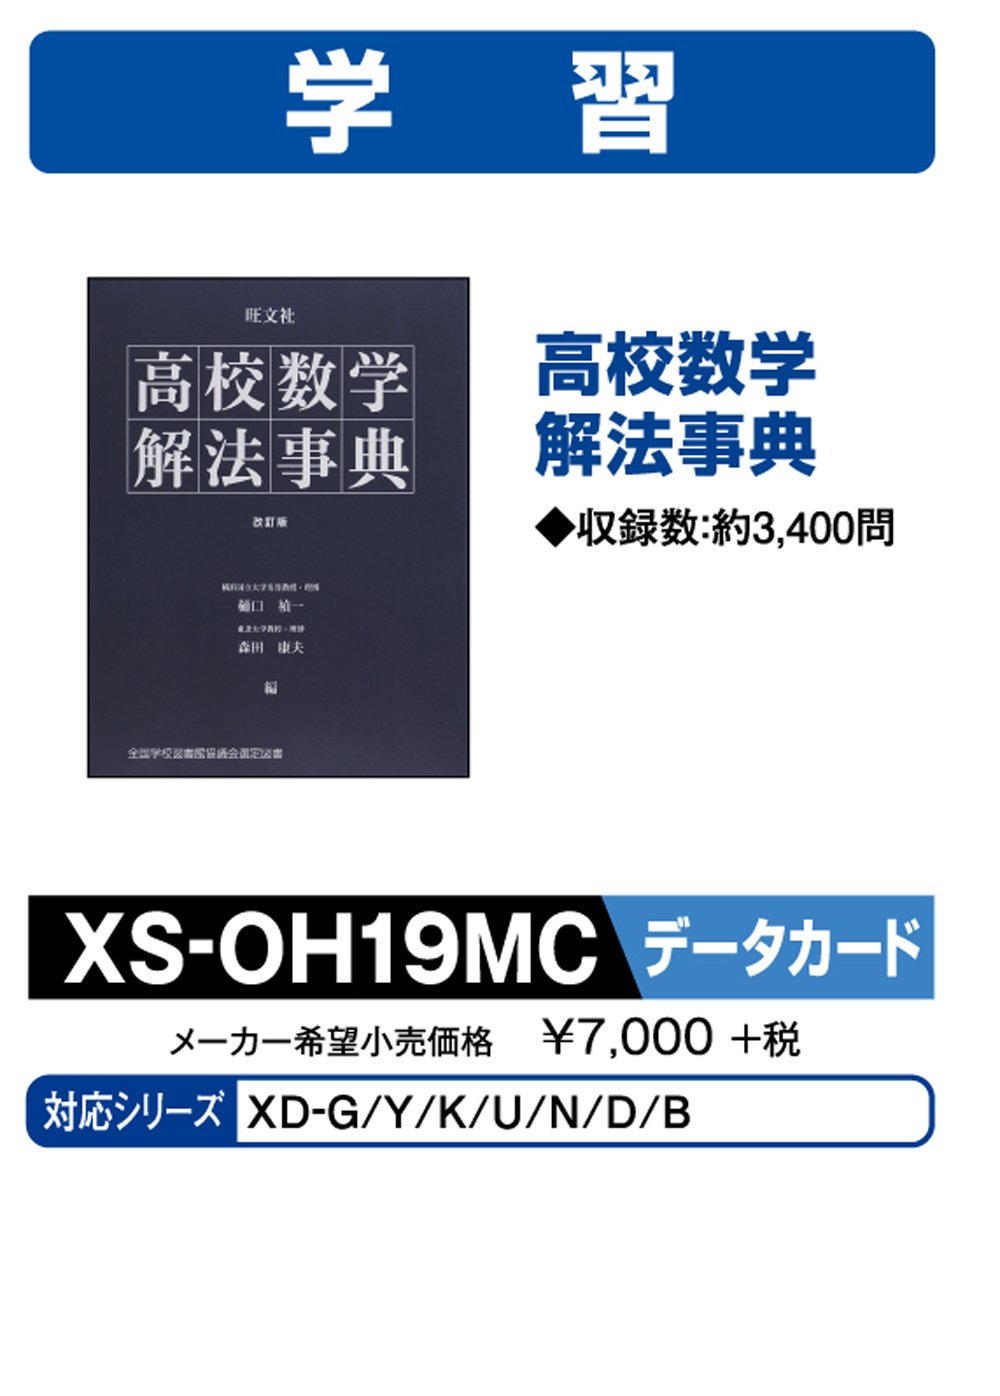 Casio electronic dictionary add content microSD card version of high school math solution encyclopedia XS-OH19MC